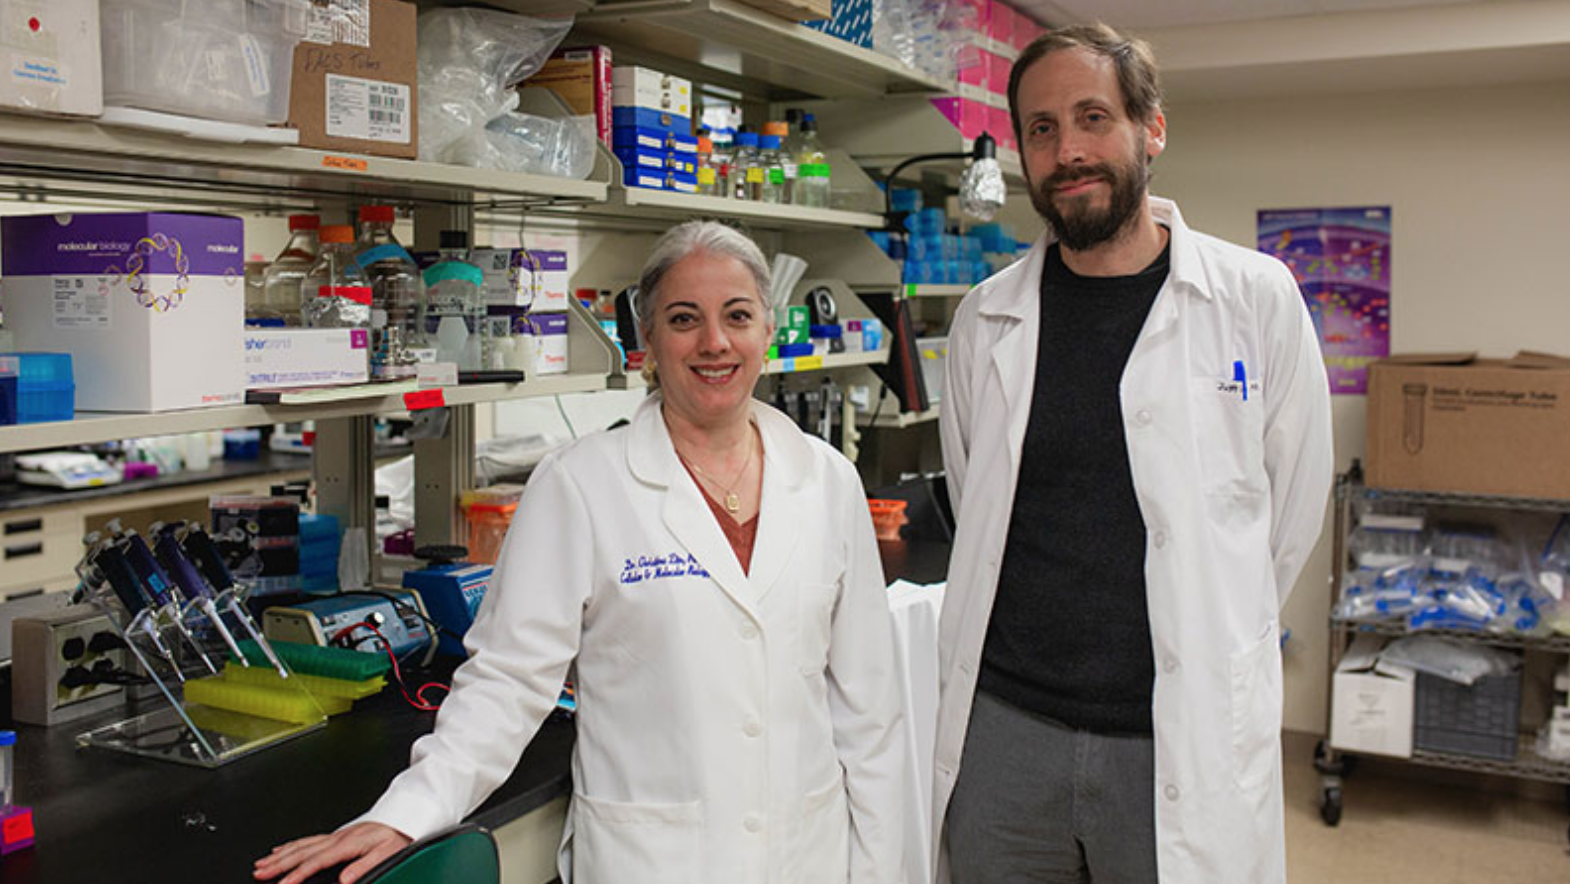 Image of Tina Zito, Ph.D., and Carter Takacs, Ph.D.